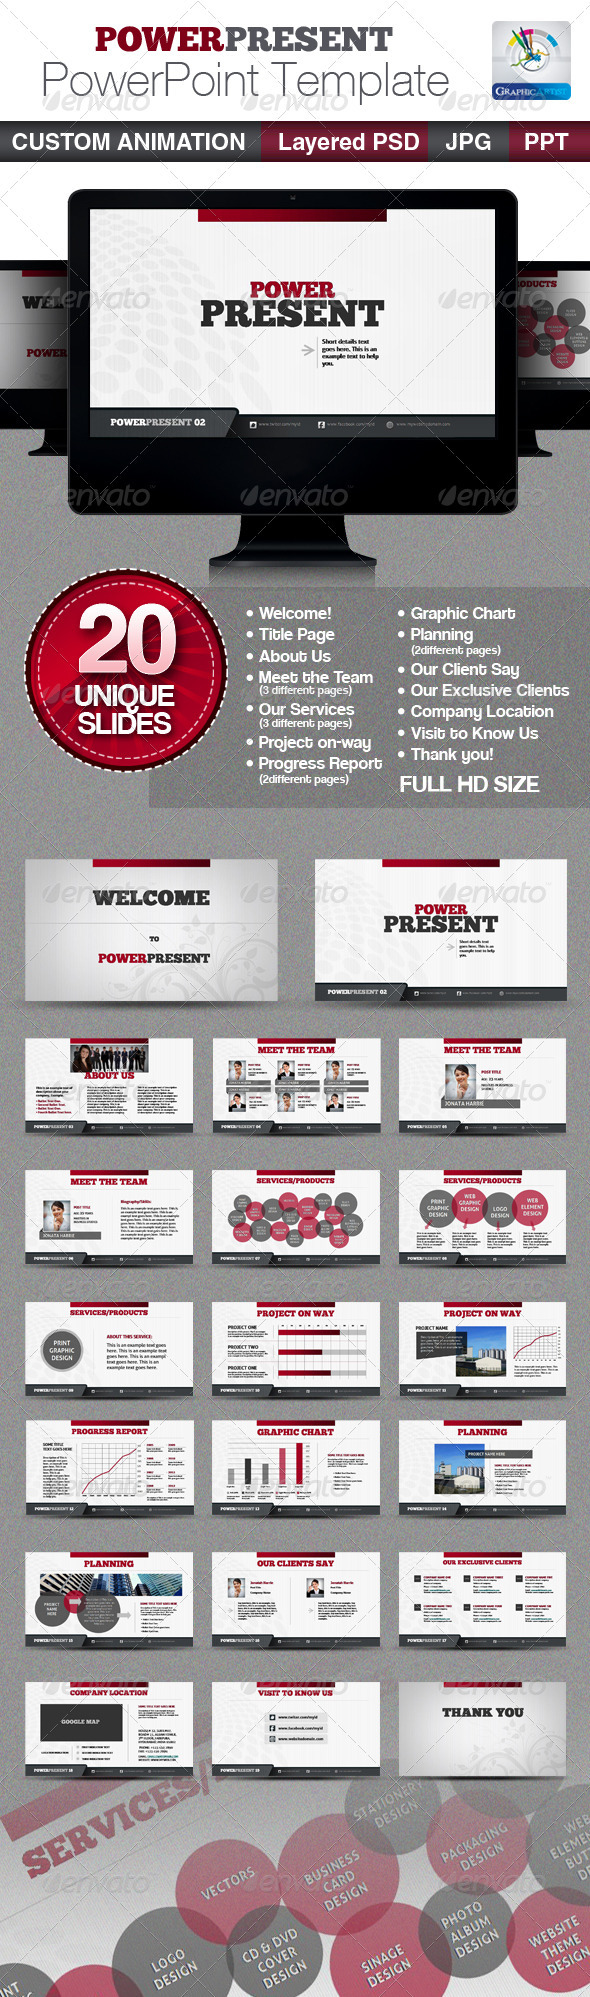 GraphicRiver PowerPresent PowerPoint Templates 2524562